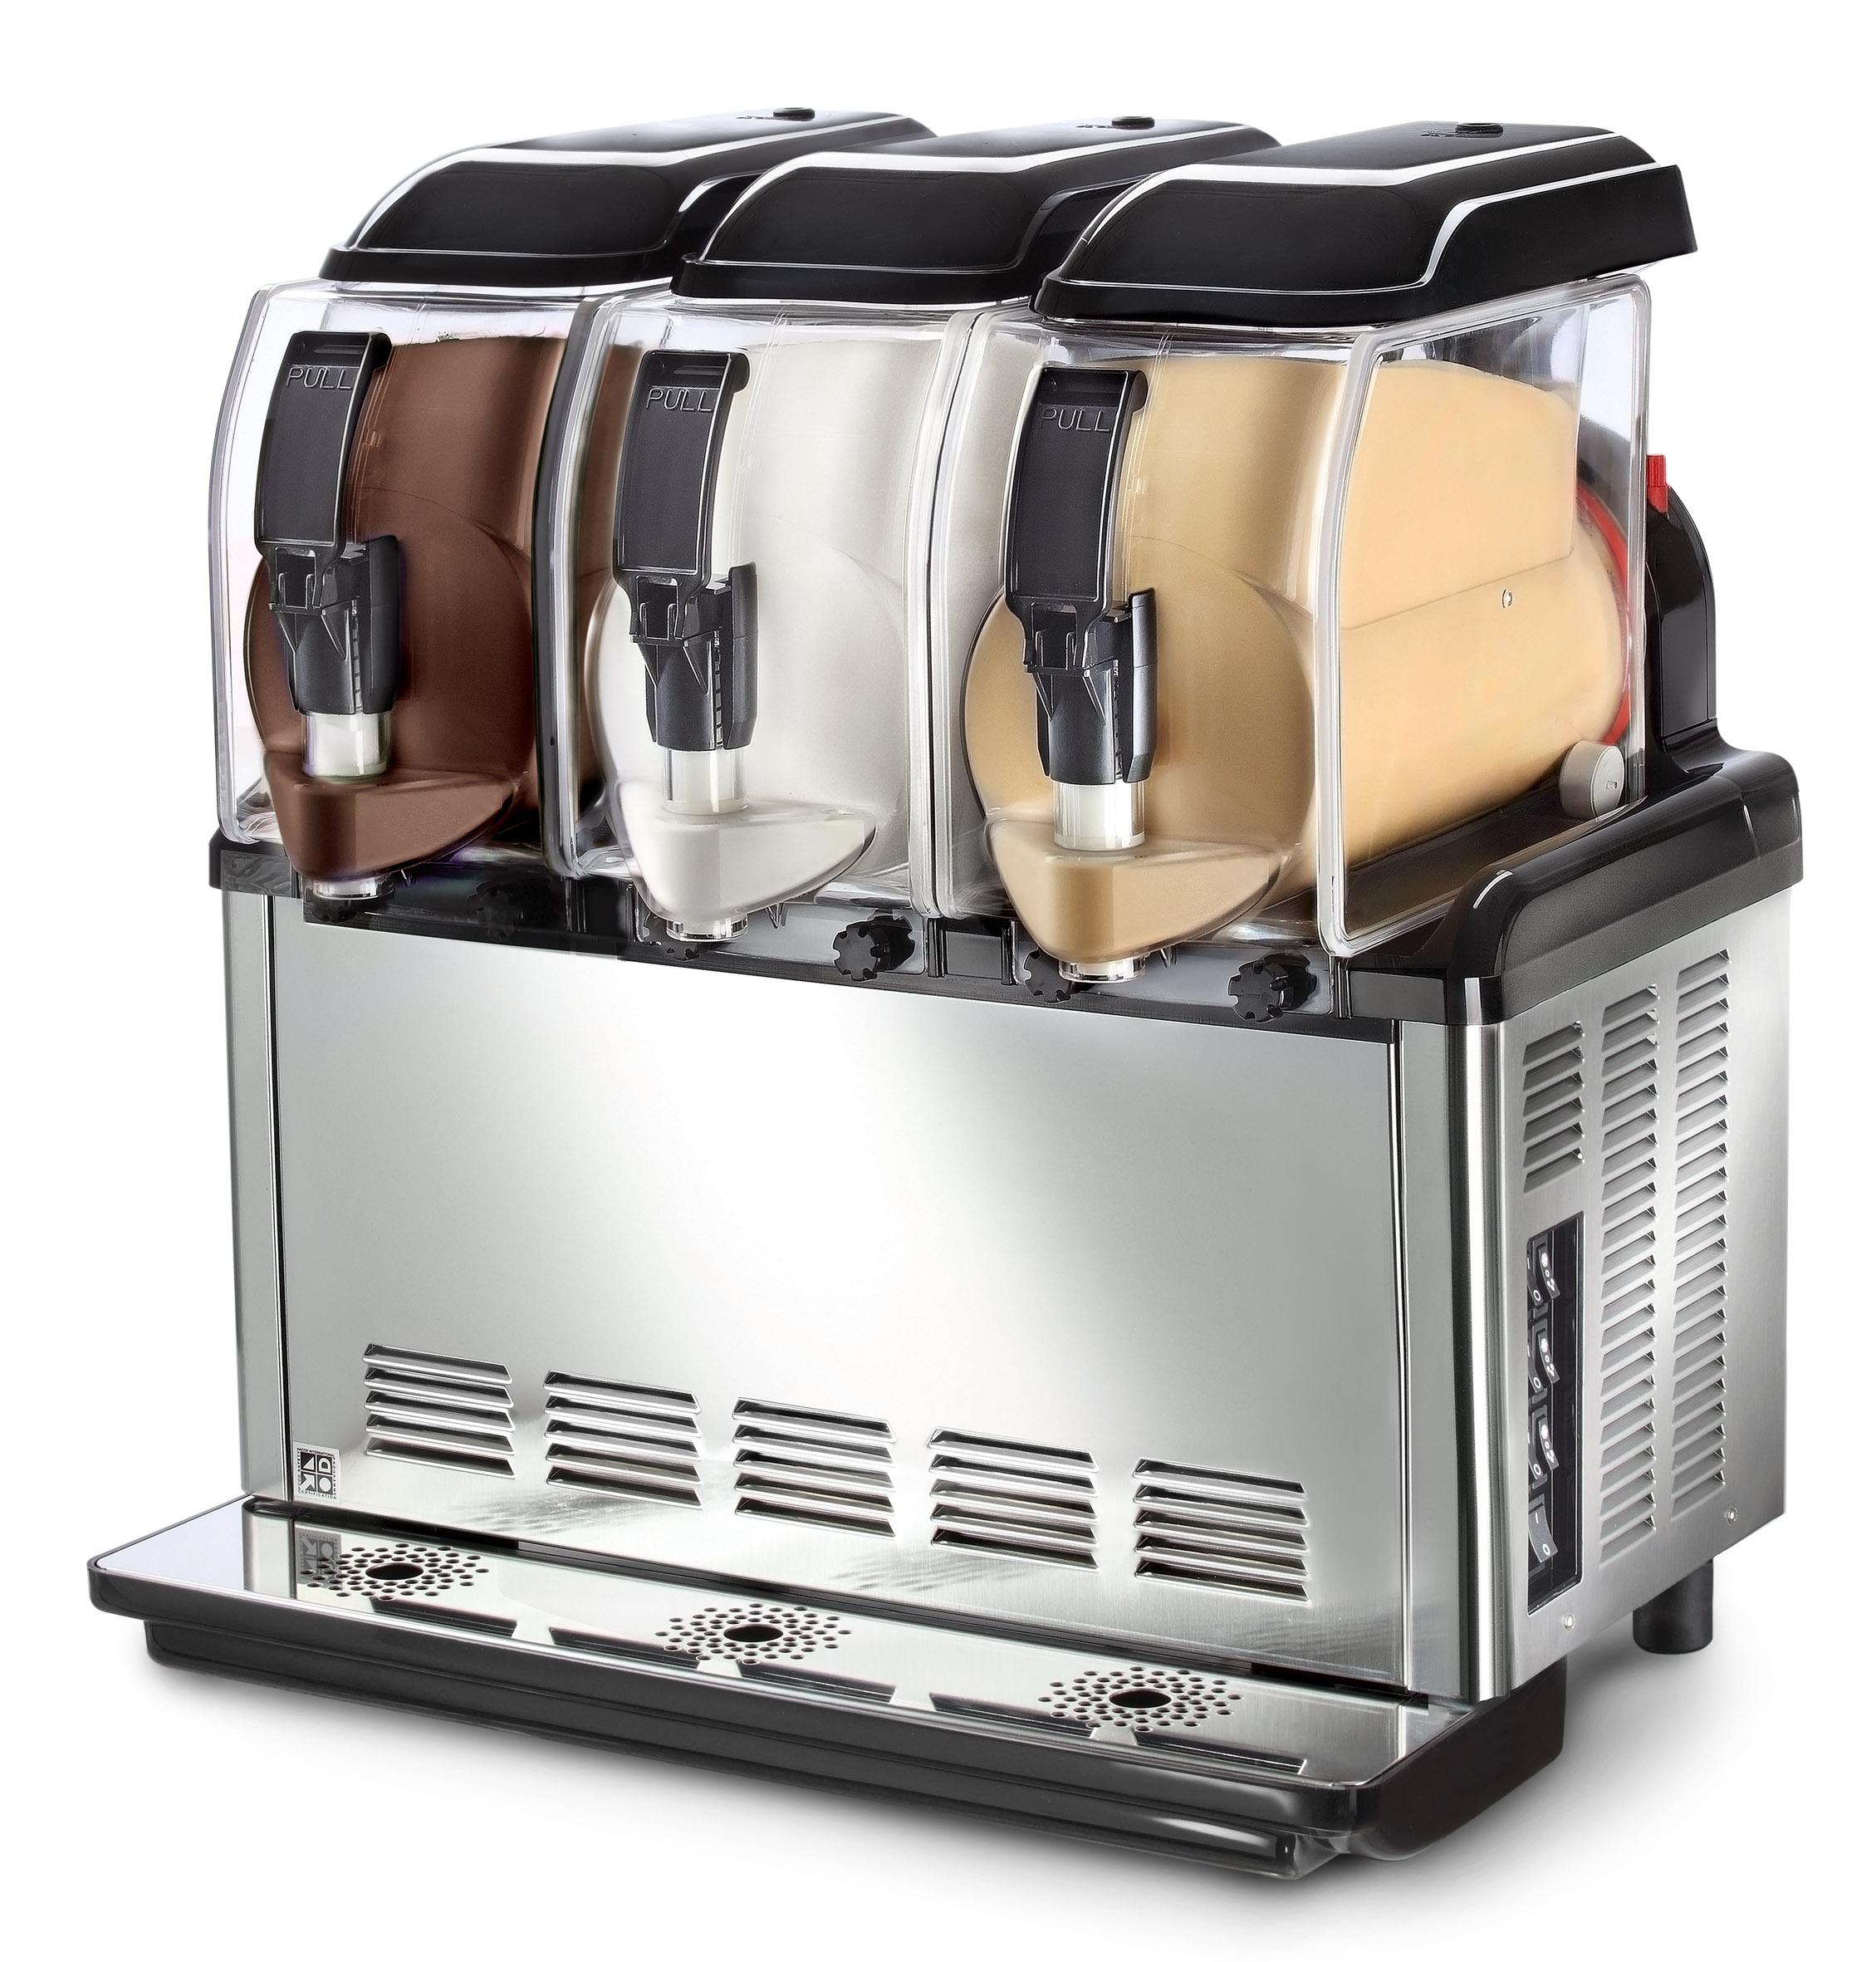 SP3 Soft Ice Cream Machine